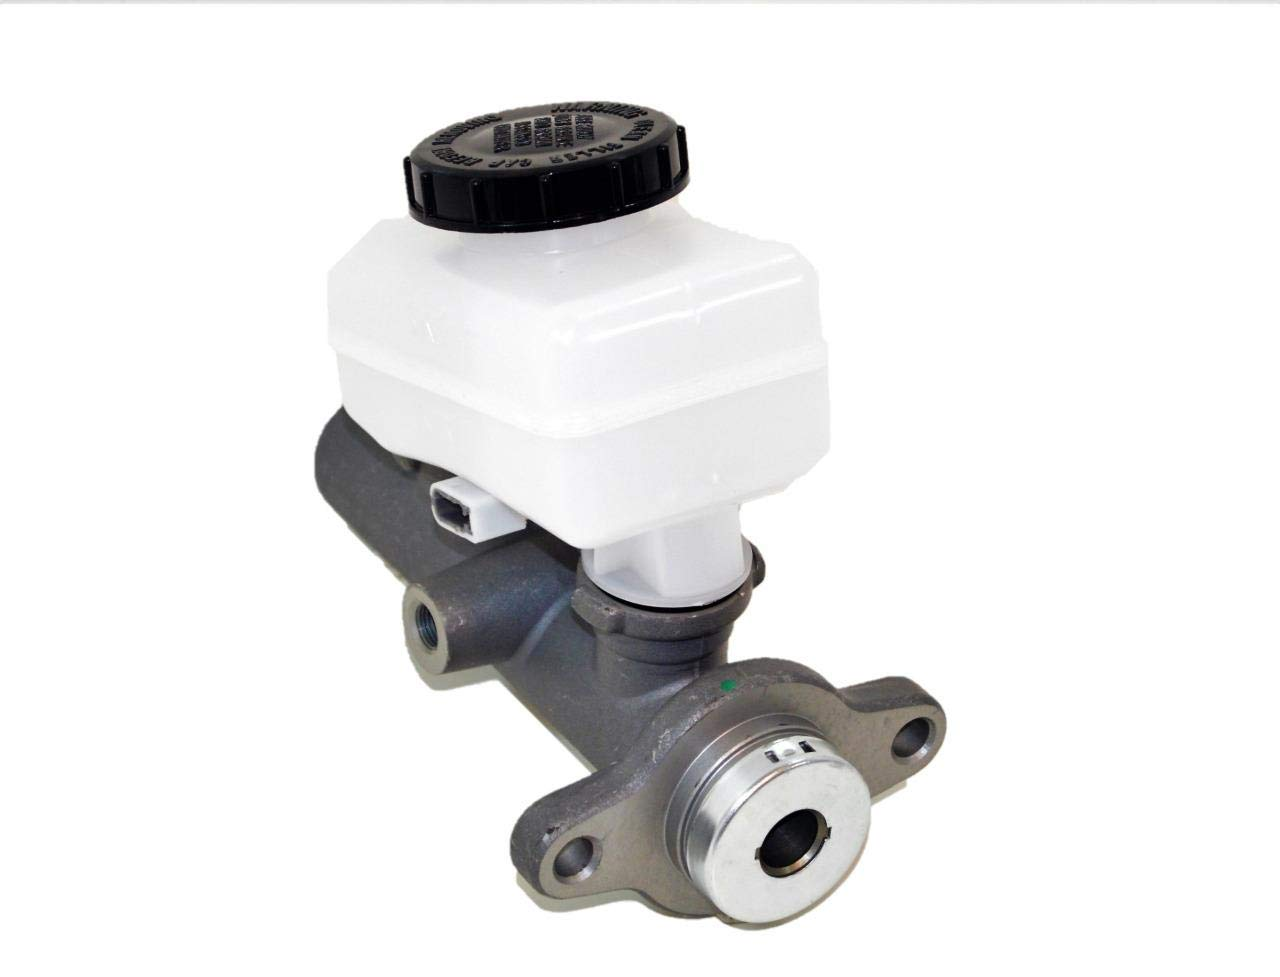 Brake Master Cylinder with 5 Year Warranty for Pathfinder 1996-2001 QX4 1997-2001 4WD Models